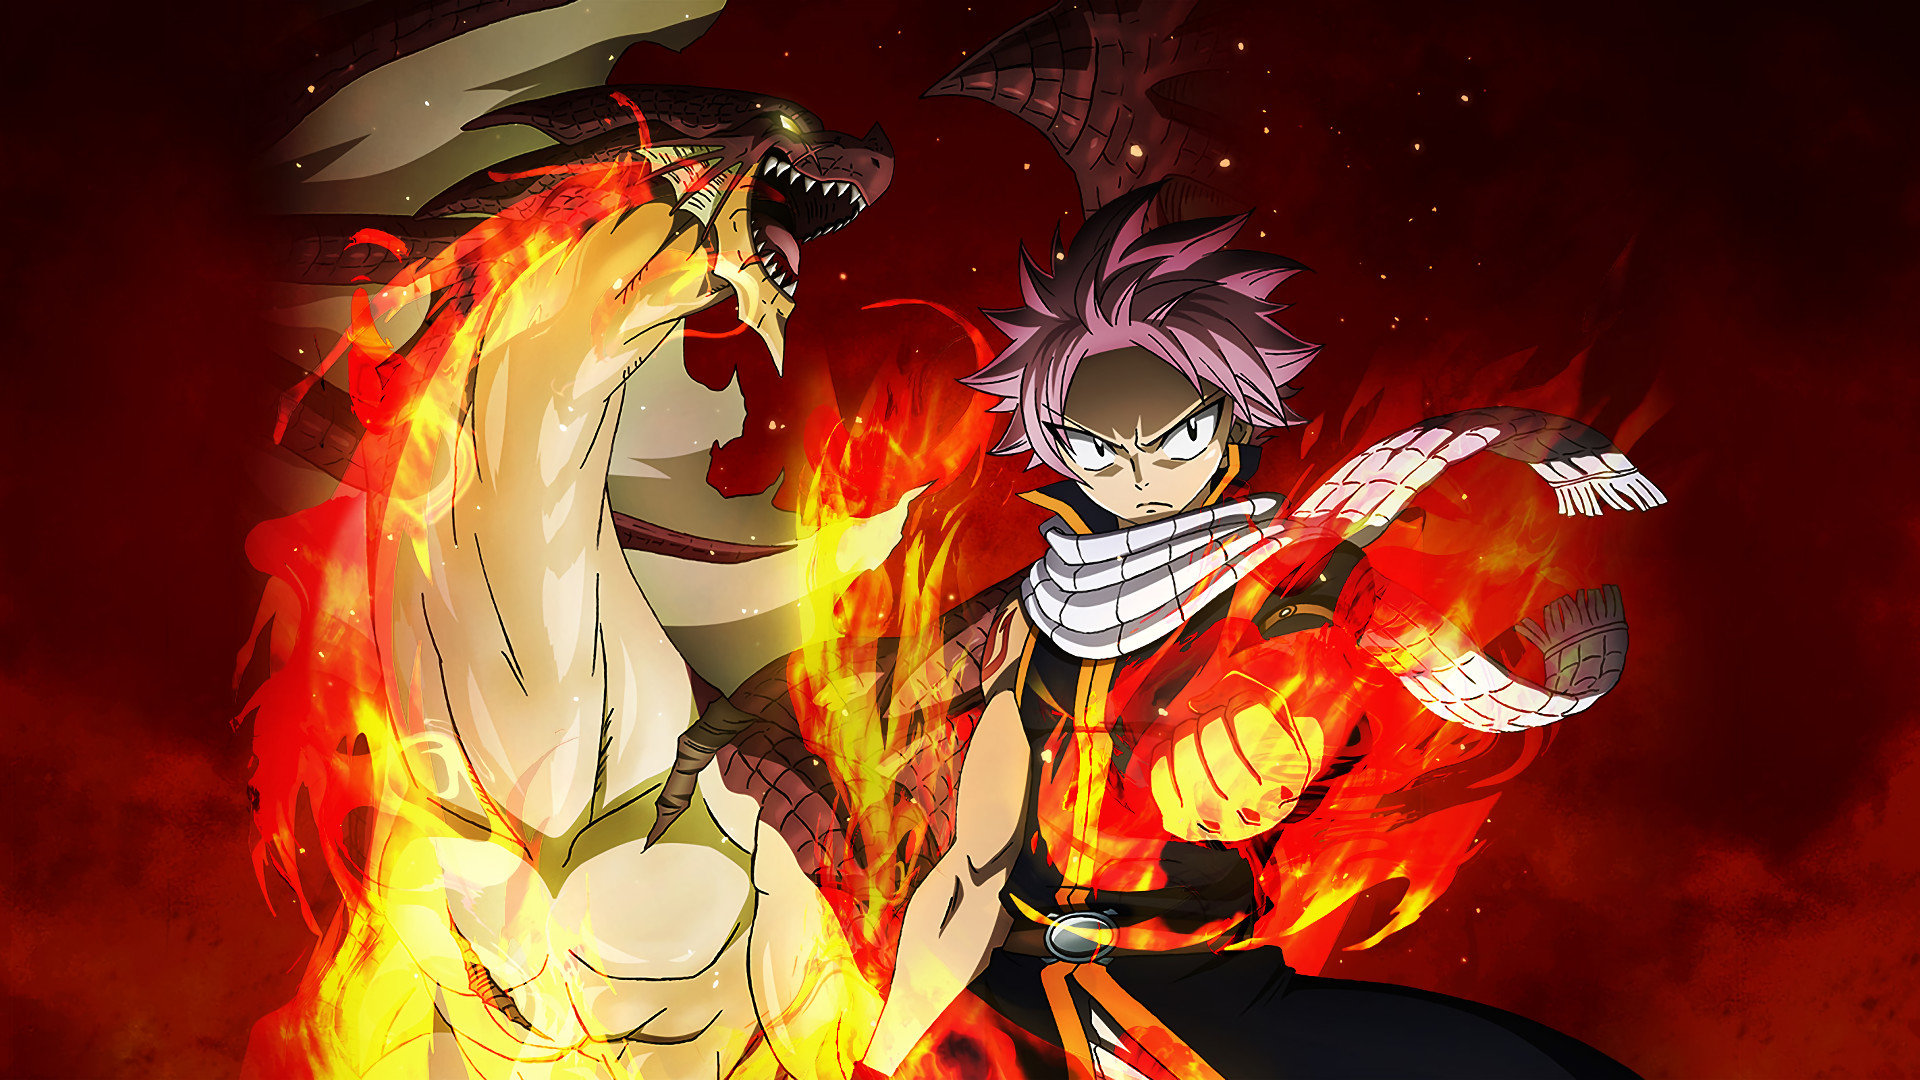 Fairy Natsu Dragneel Wallpaper HD for Android APK